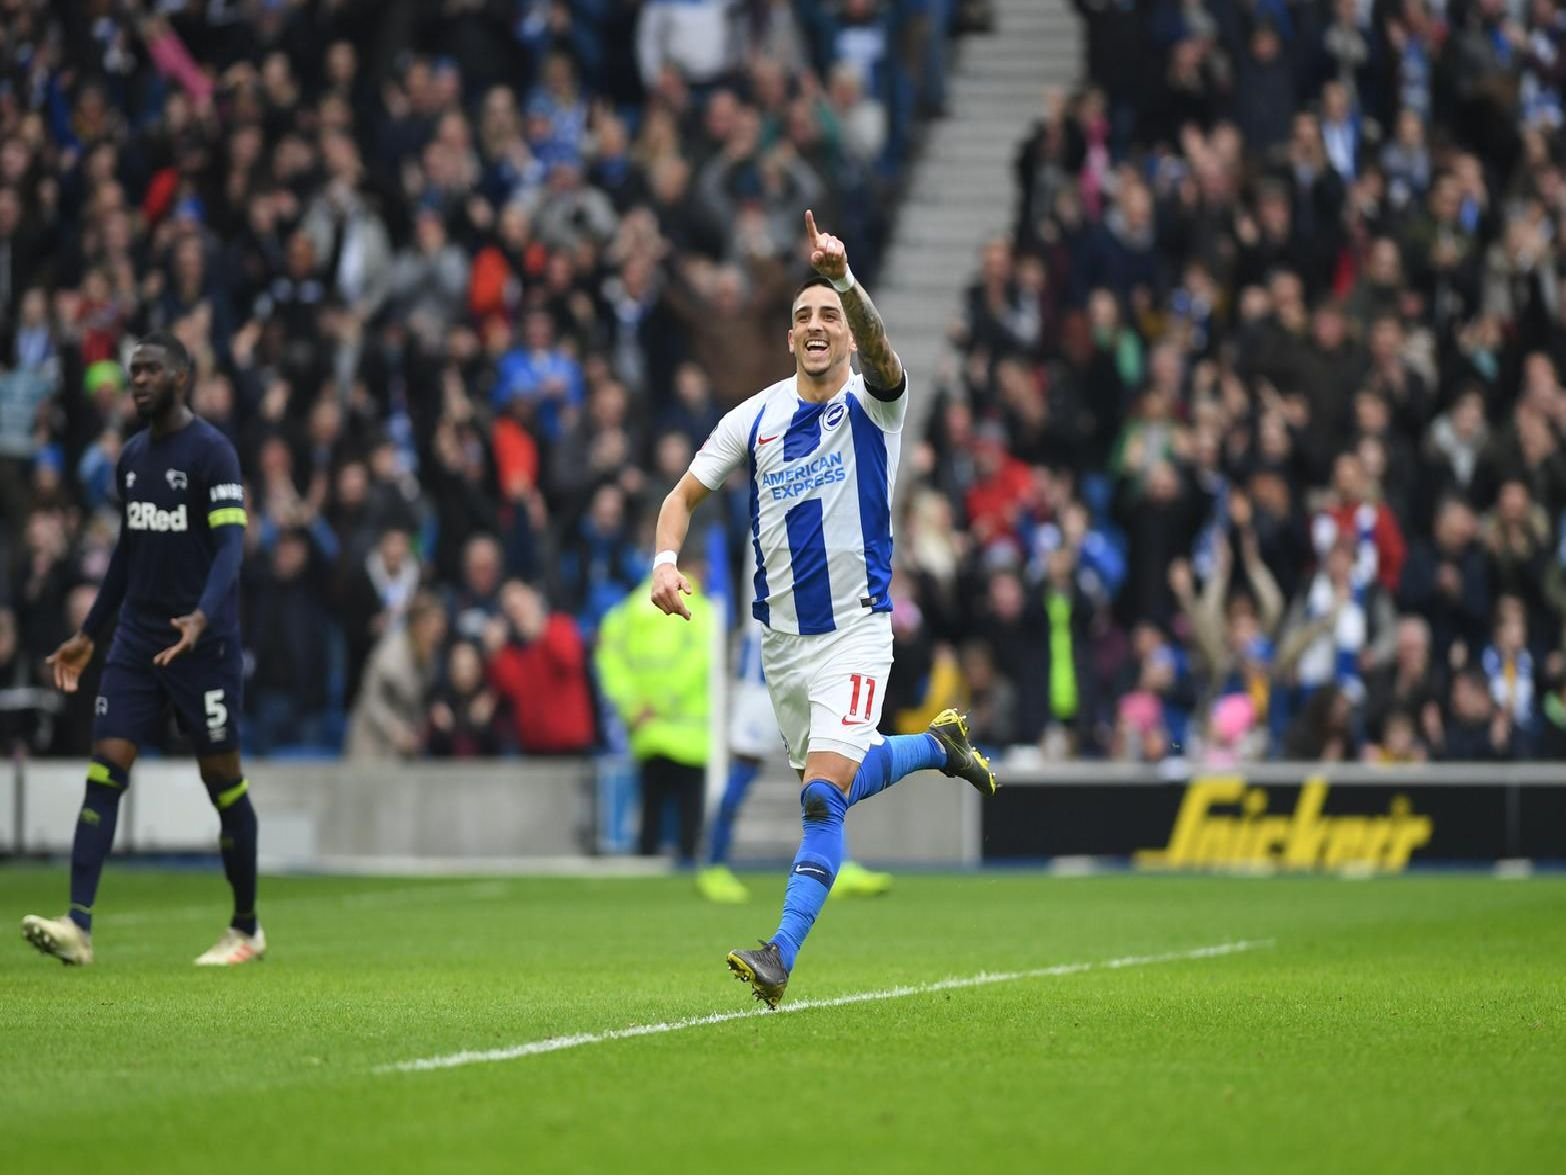 Anthony Knockaert celebrates giving Brigjton the lead against Derby. Picture by PW Sporting Photography